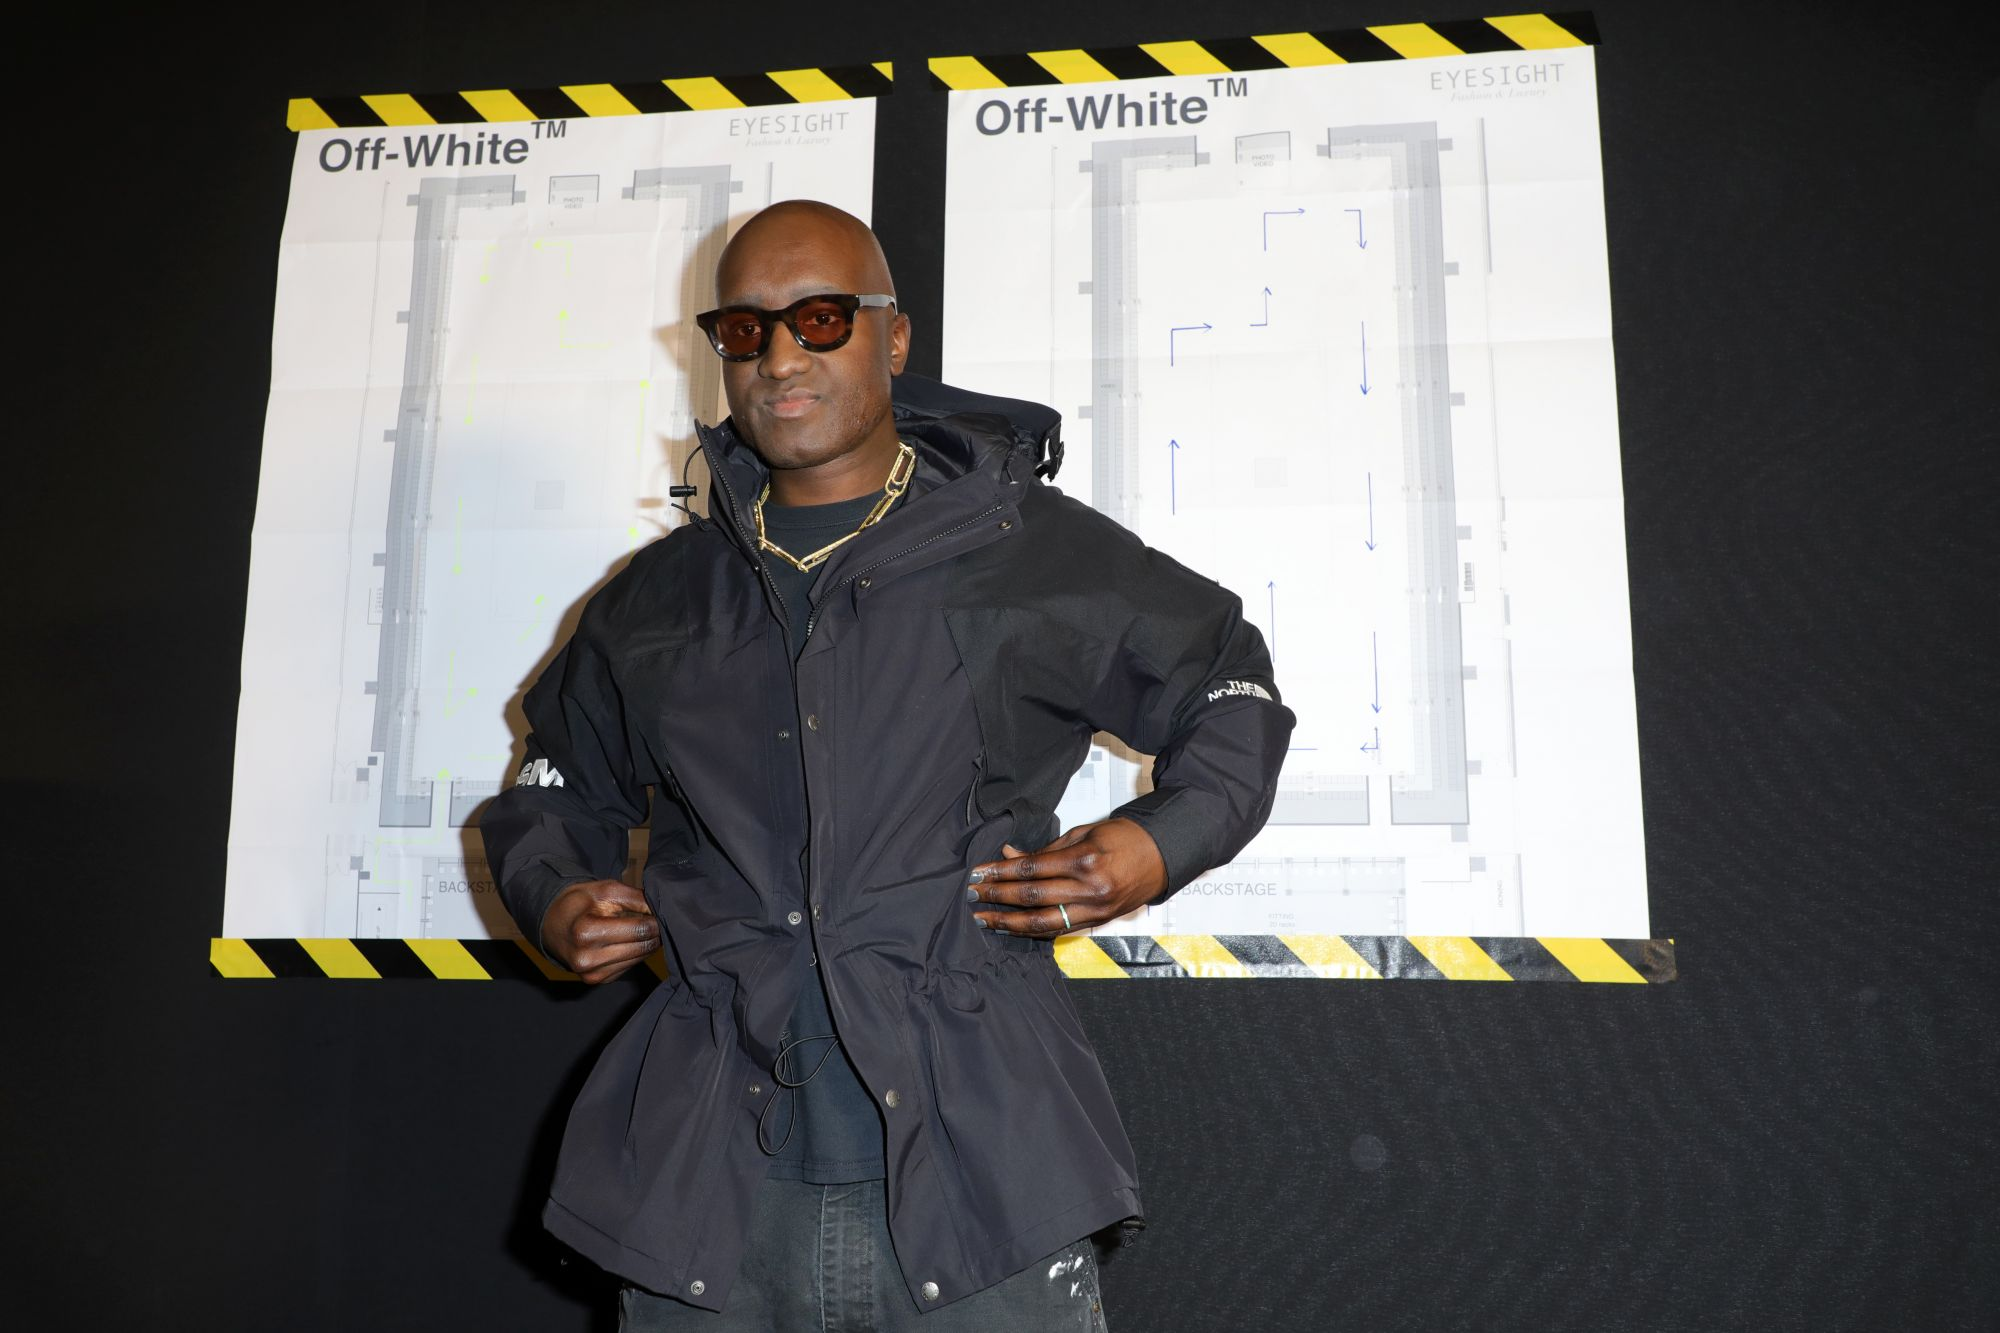 PARIS, FRANCE - JANUARY 15: Designer Virgil Abloh poses backstage after the Off-White Menswear Fall/Winter 2020-2021  show as part of Paris Fashion Week on January 15, 2020 in Paris, France. (Photo by Pierre Suu/Getty Images)